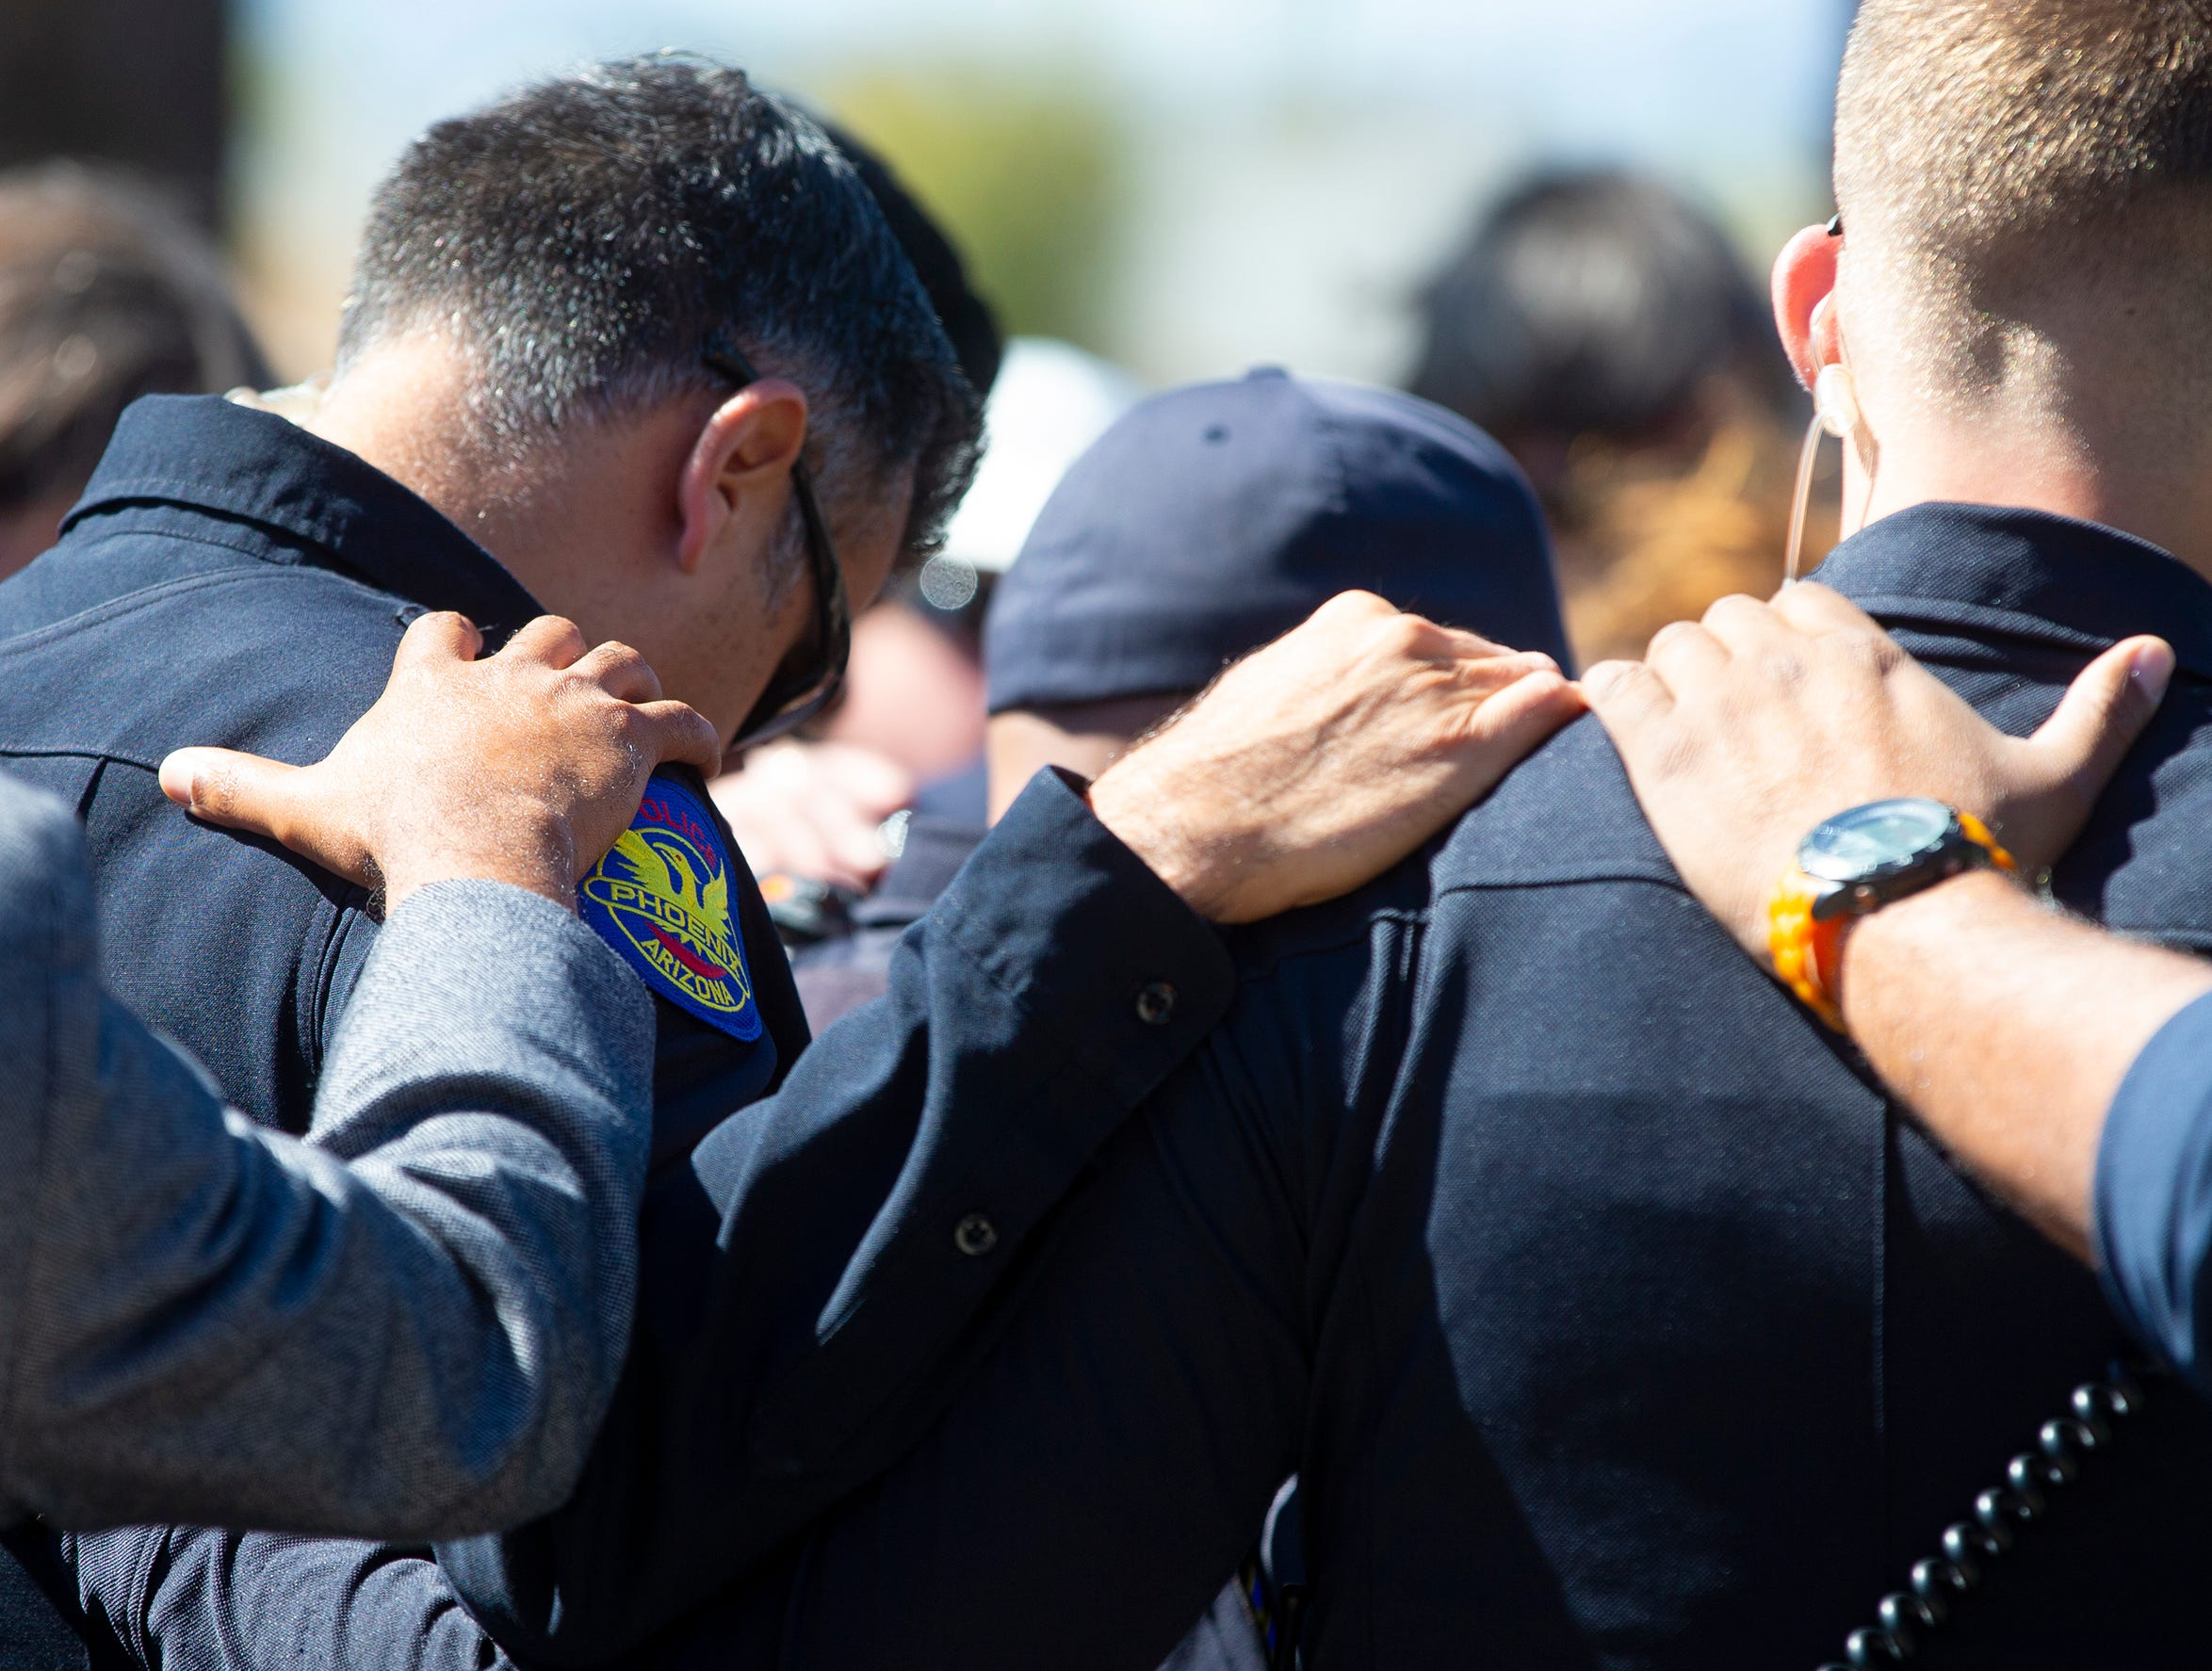 Pastor Ellis Ogles prays with officers March 22, 2019, during a gathering outside Phoenix Police Maryvale Precinct for Officer Paul Rutherford, who was killed in a crash March 21.